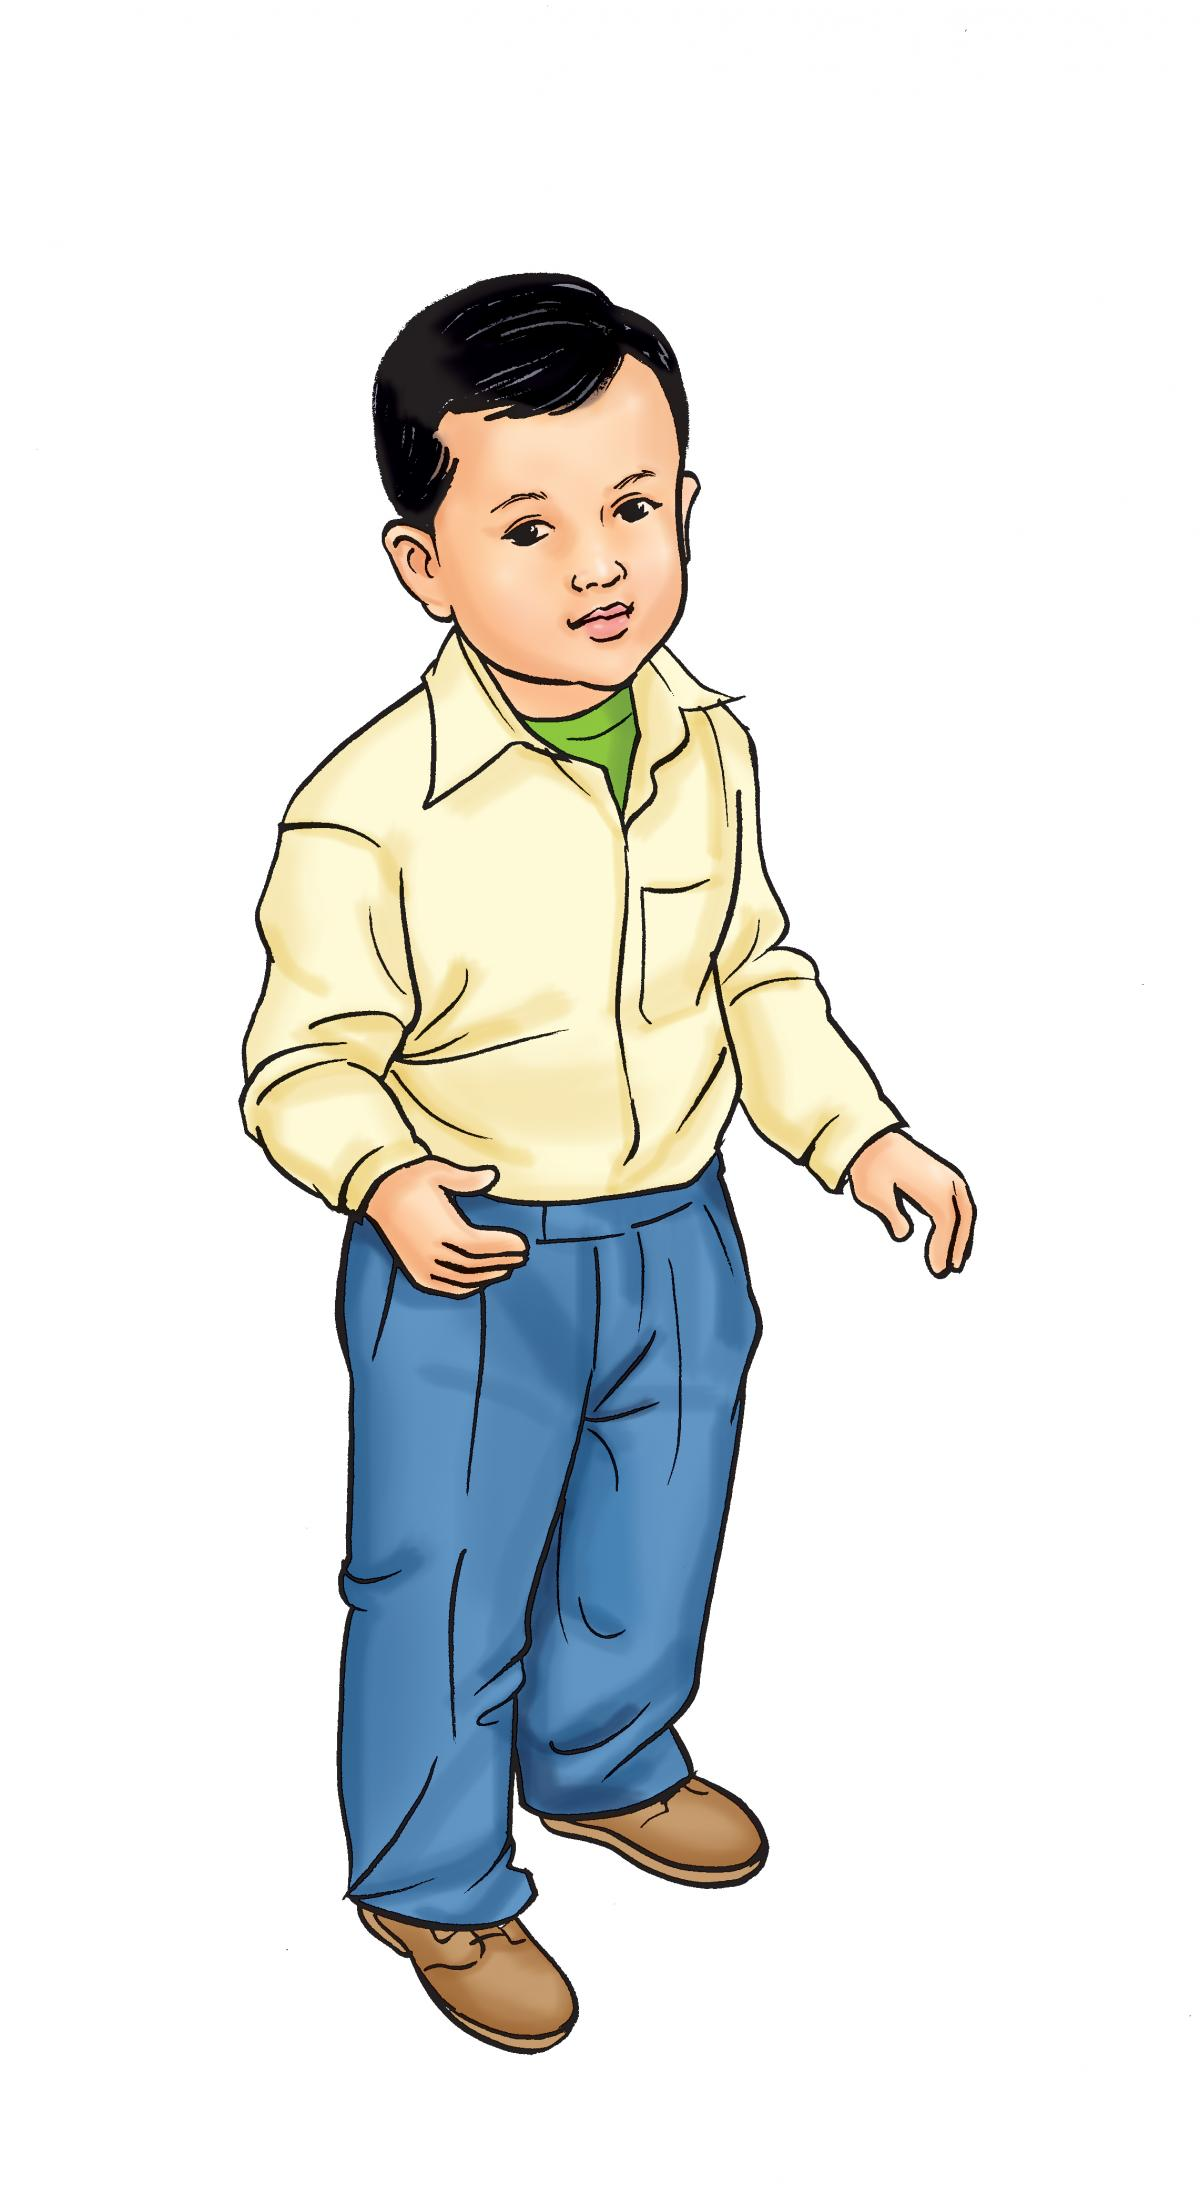 People - Healthy toddler boy 18-24 mo - 01A - Nepal